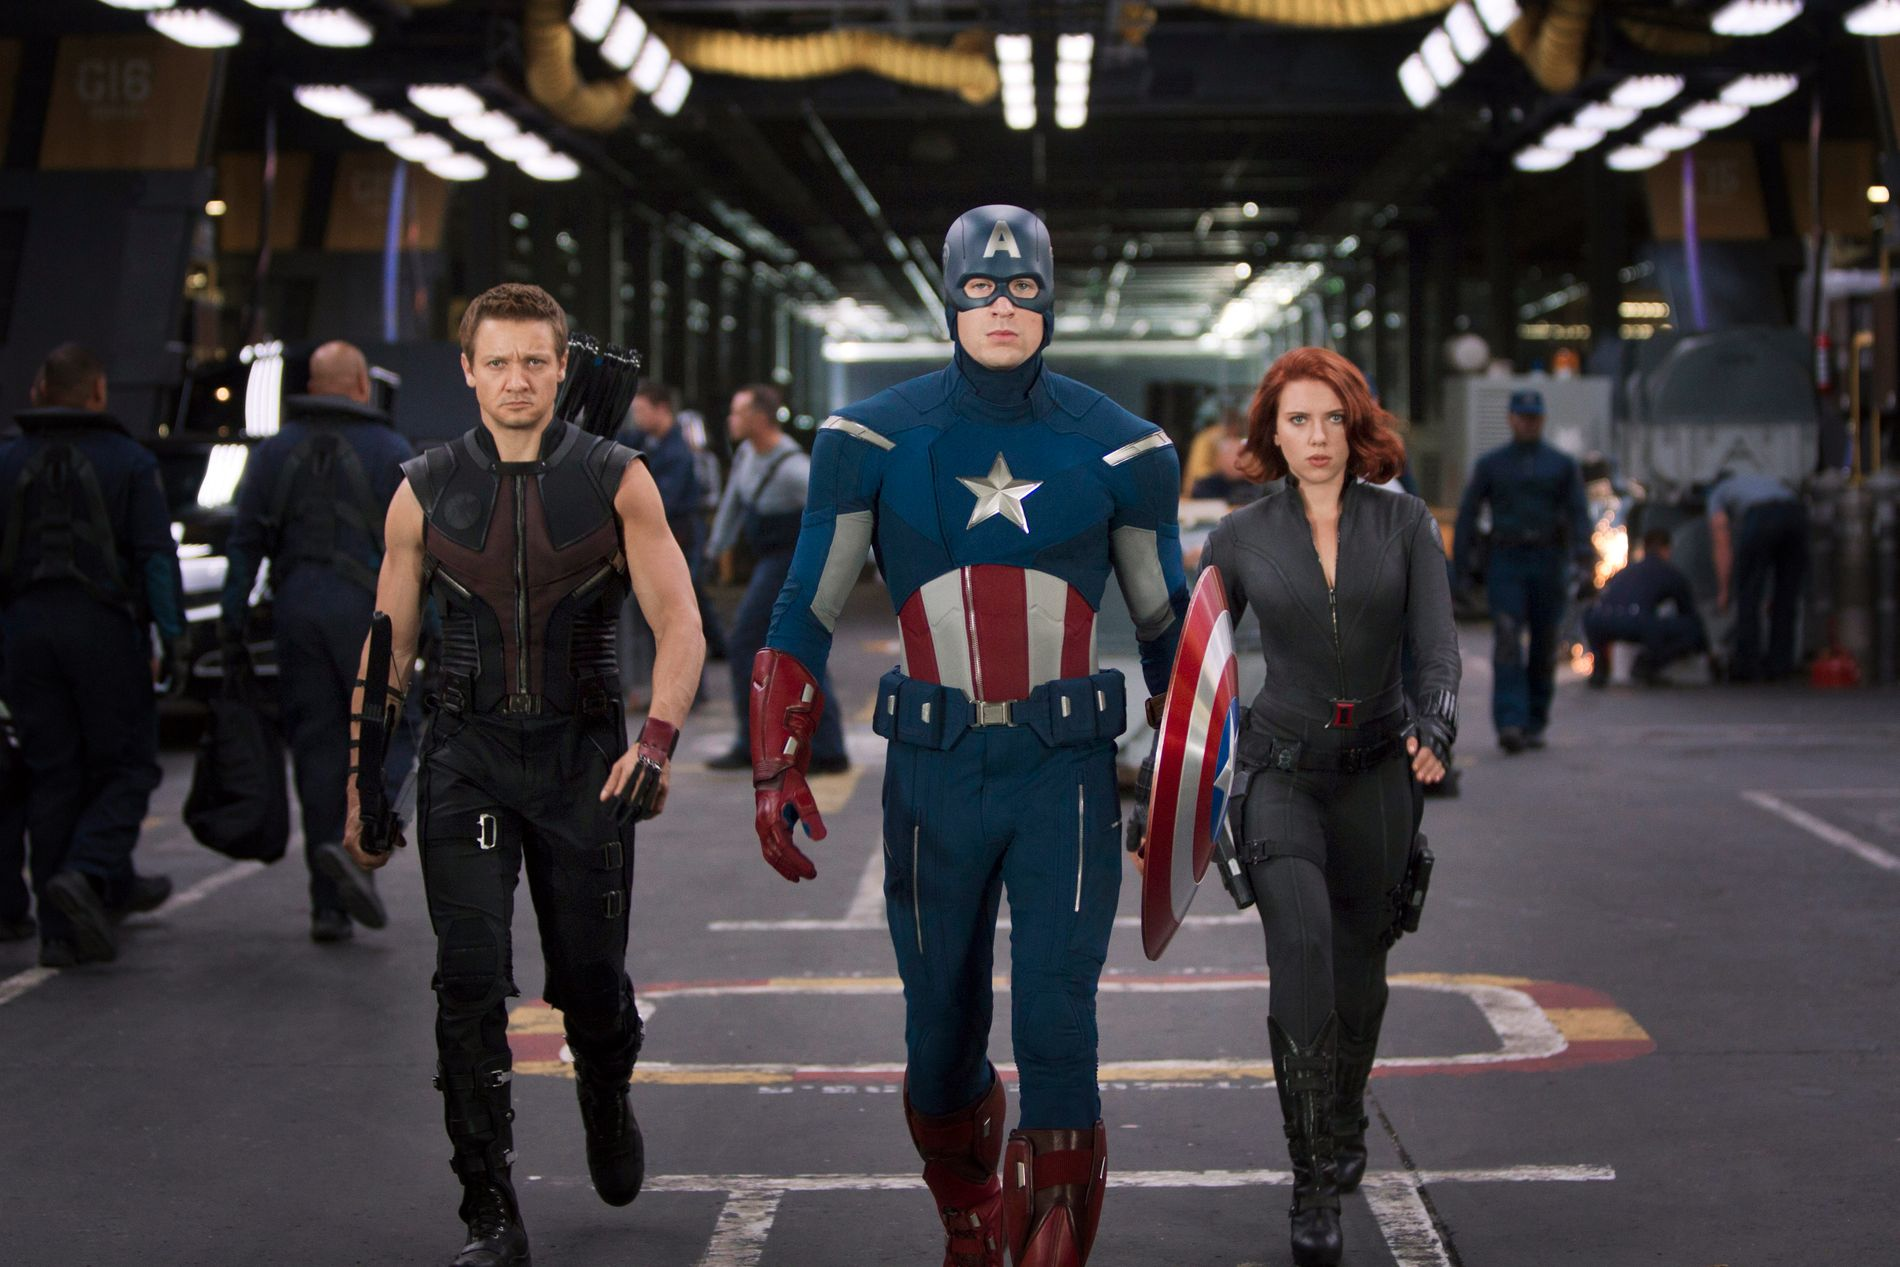 Holder: Stan Lee, who died on social media, was Jeremy Arnner, Chris Evans and Scarlett Johansson. Here they are